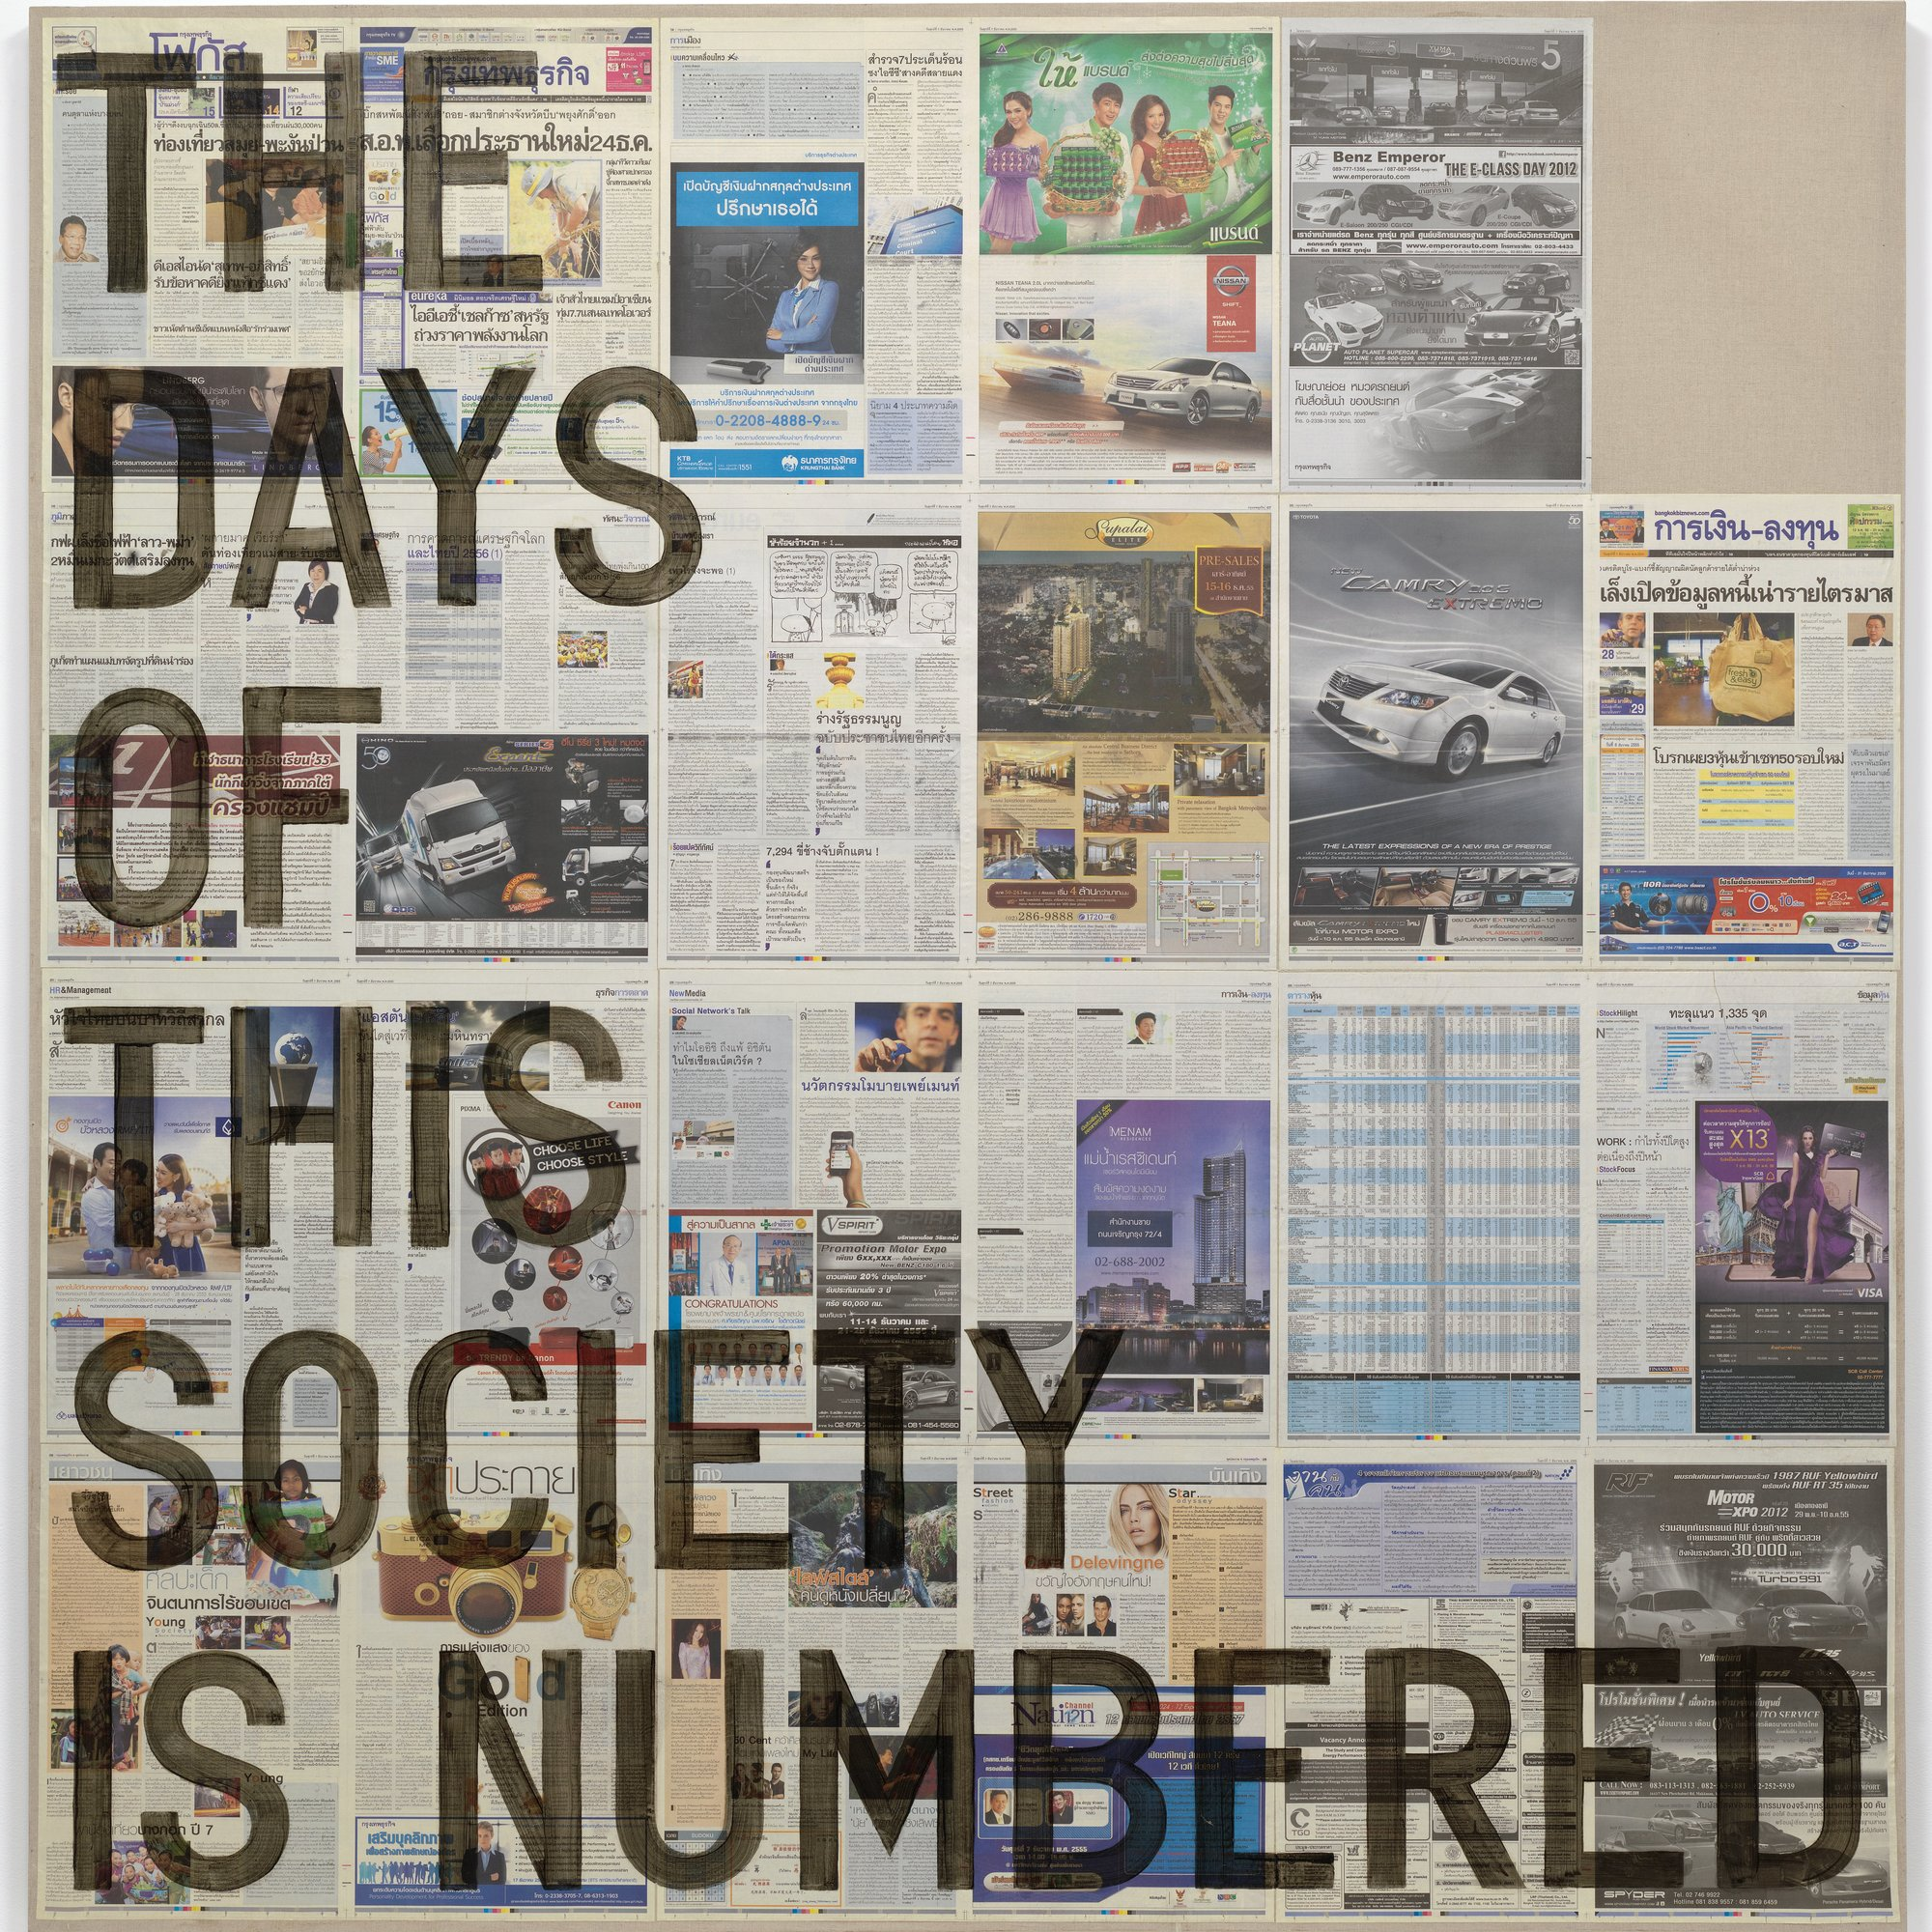 "Rirkrit Tiravanija (Thai, born Argentina 1961). untitled (the days of this society is numbered / December 7, 2012). 2014. Synthetic polymer paint and newspaper on linen, 87 × 84 1/2"" (221 × 214.6 cm). The Museum of Modern Art, New York. Committee on Drawings and Prints Fund, 2014. © 2015 Rirkrit Tiravanija"